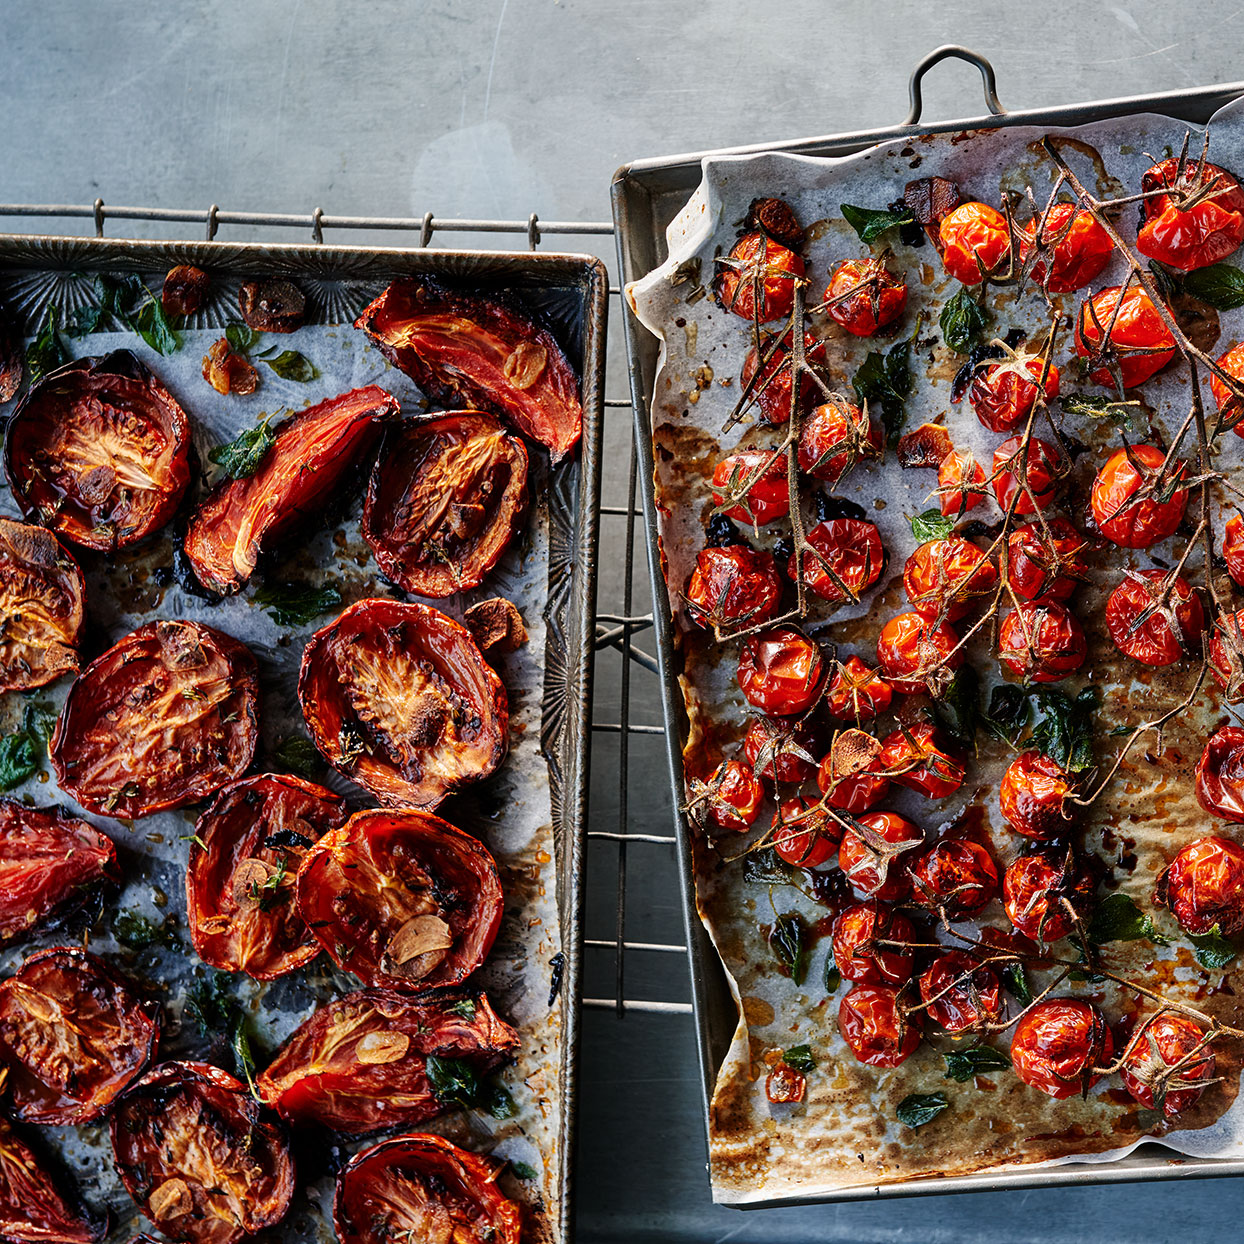 Slow-Roasted Tomatoes Trusted Brands